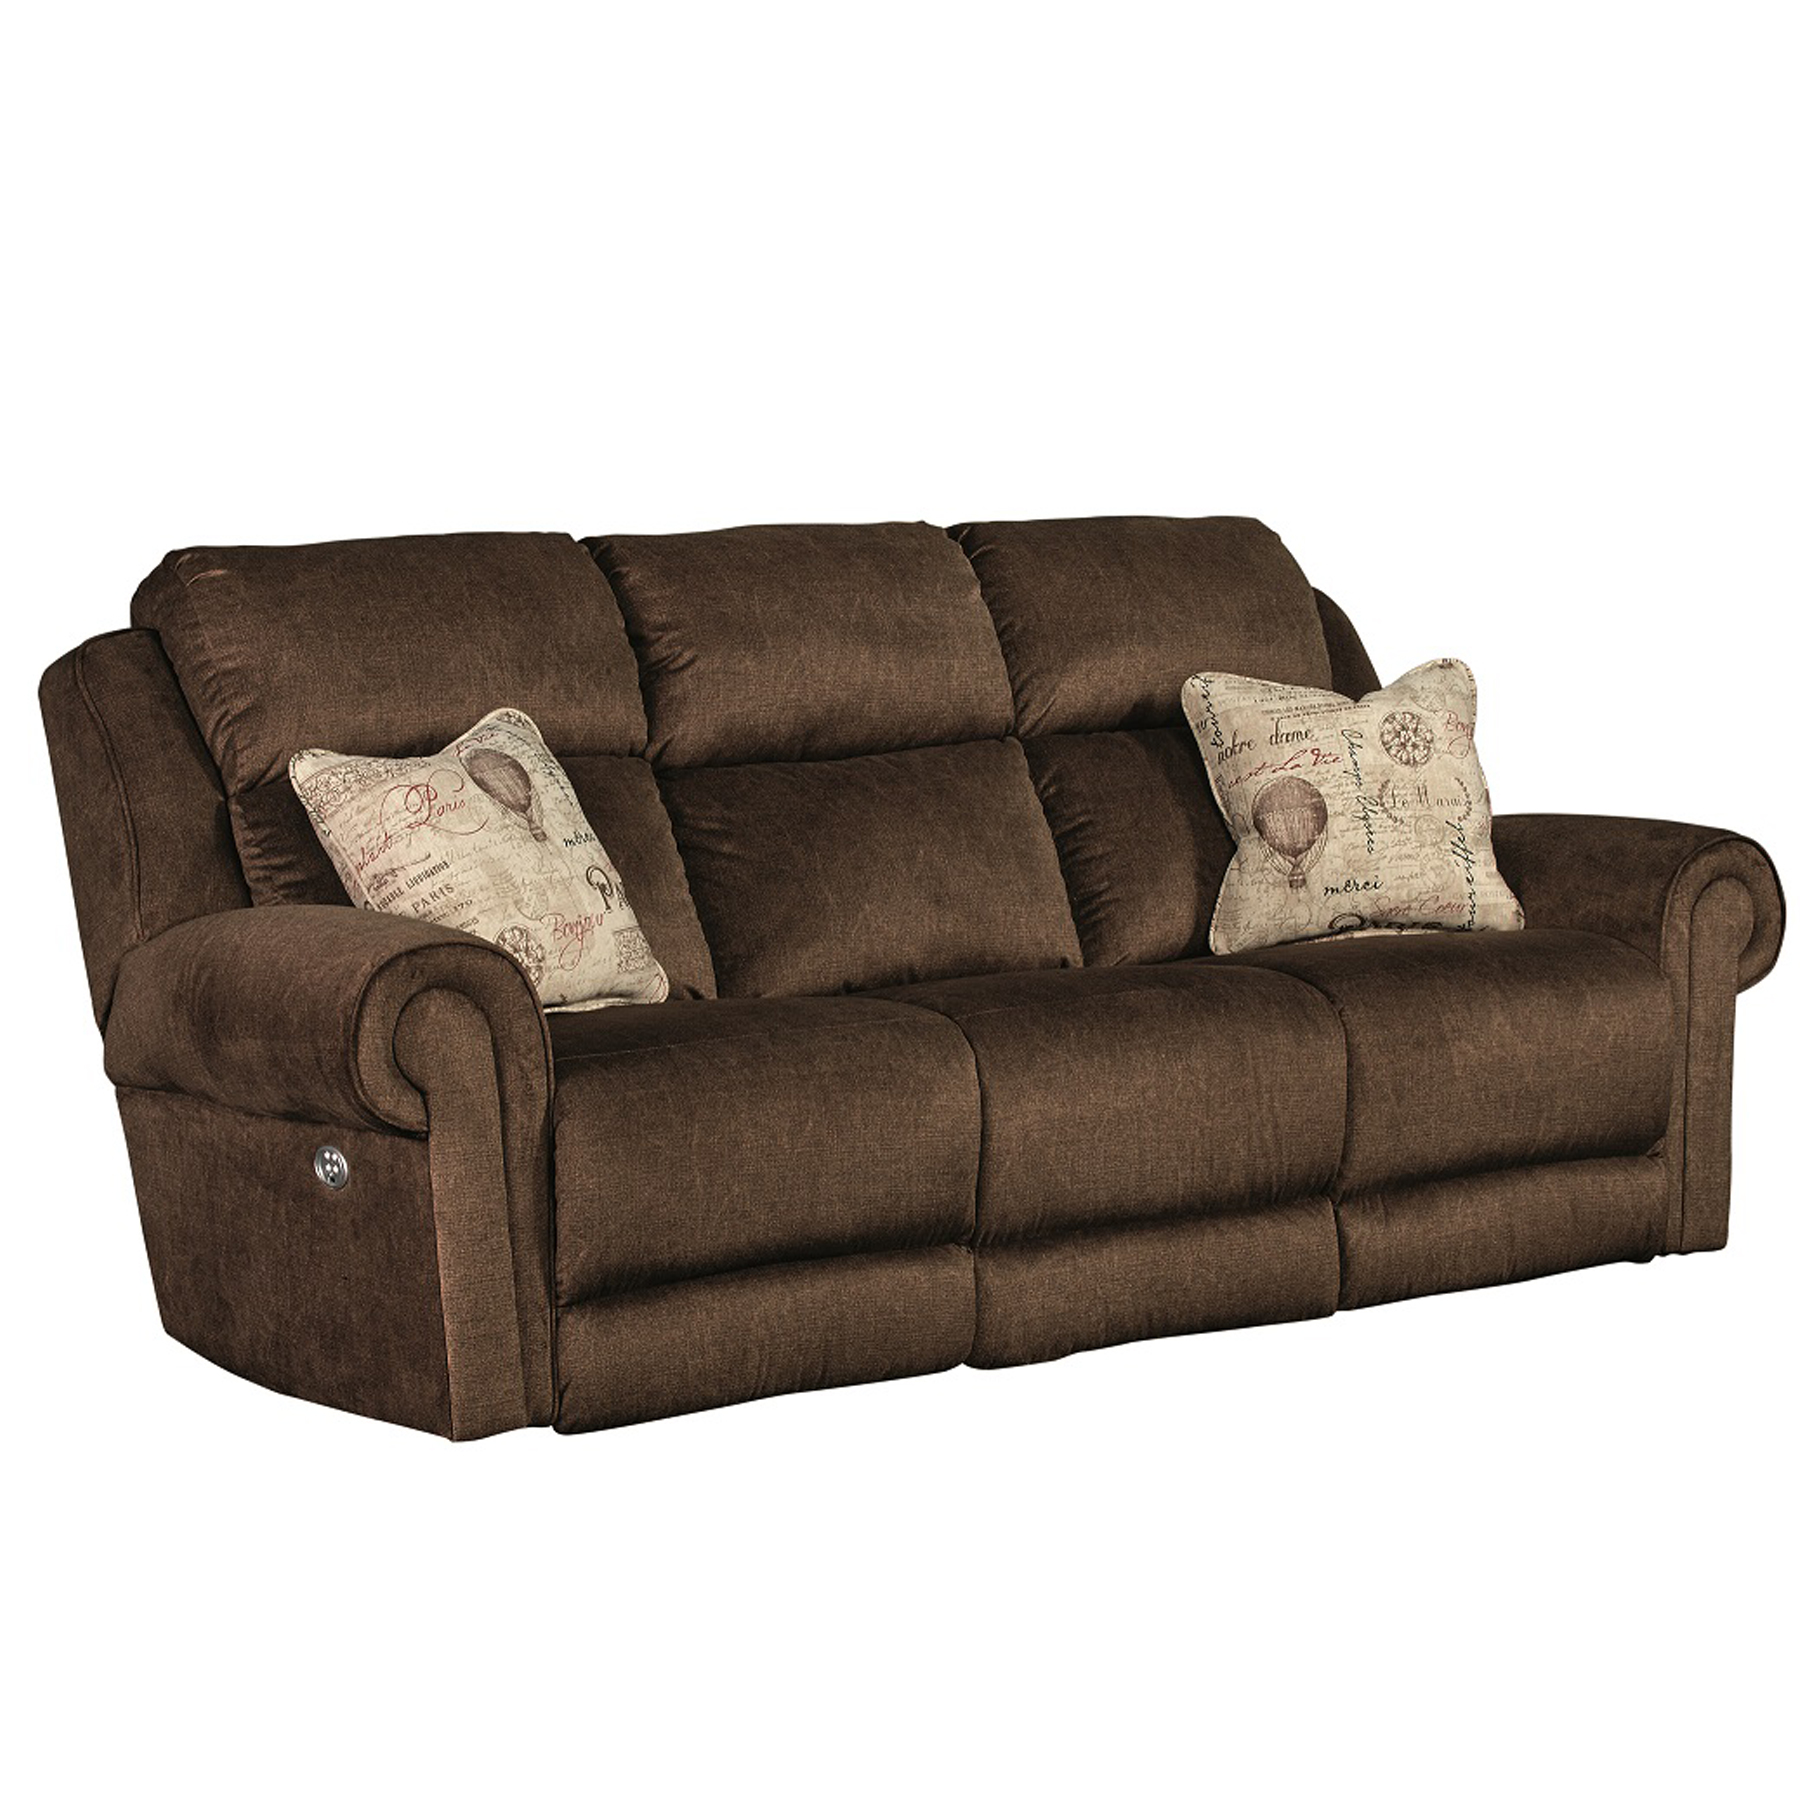 Futon Factory Paris Canyon Ranch Double Reclining Sofa W Power Sofas And Sectionals